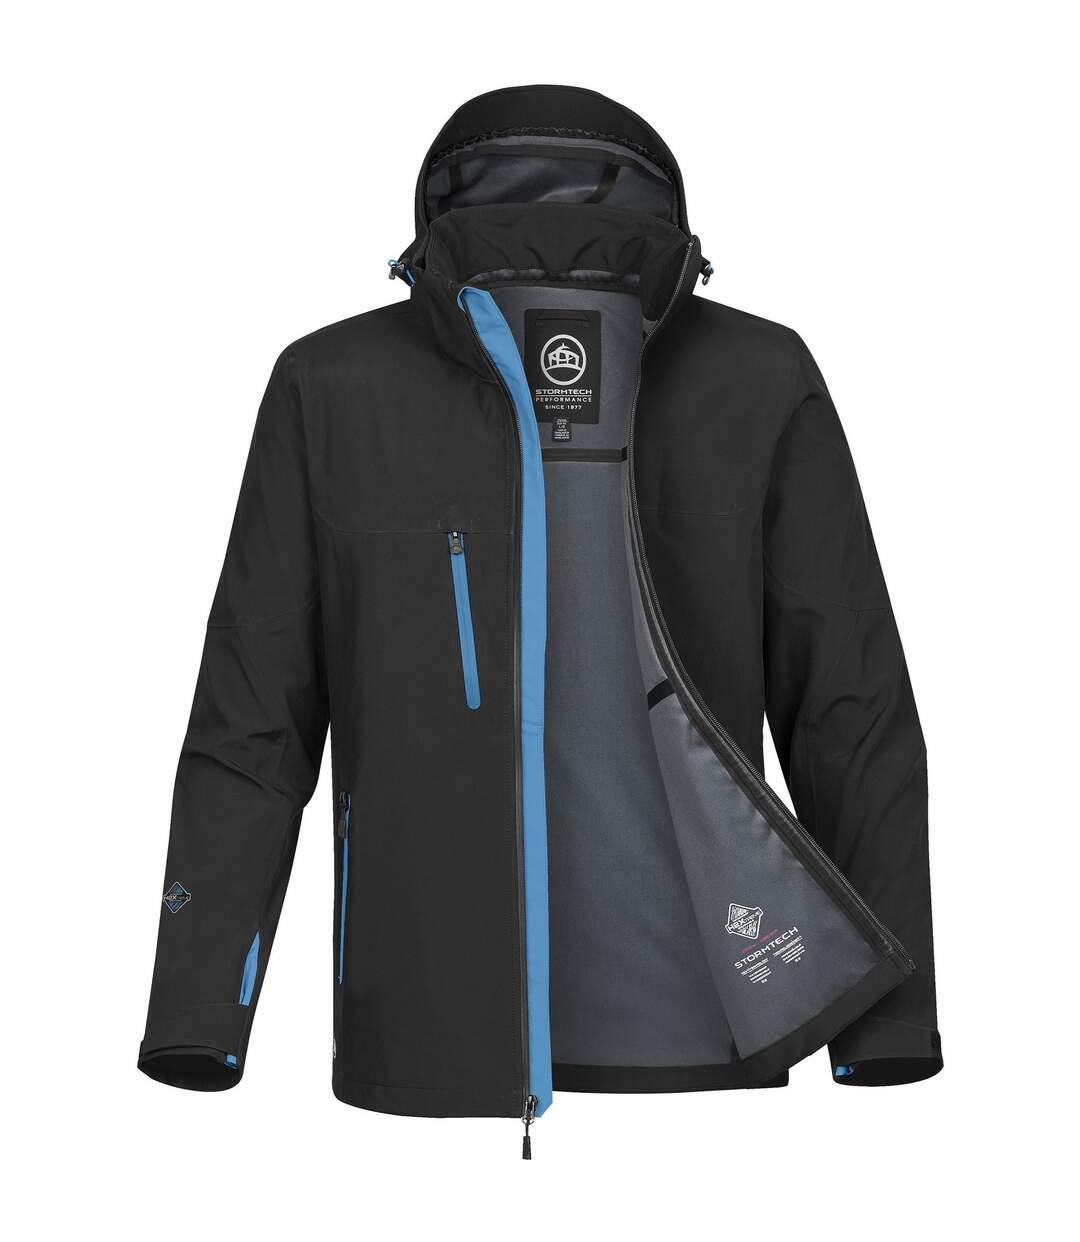 Stormtech Mens Patrol Softshell Jacket (Black/Electric Blue) - UTBC4120